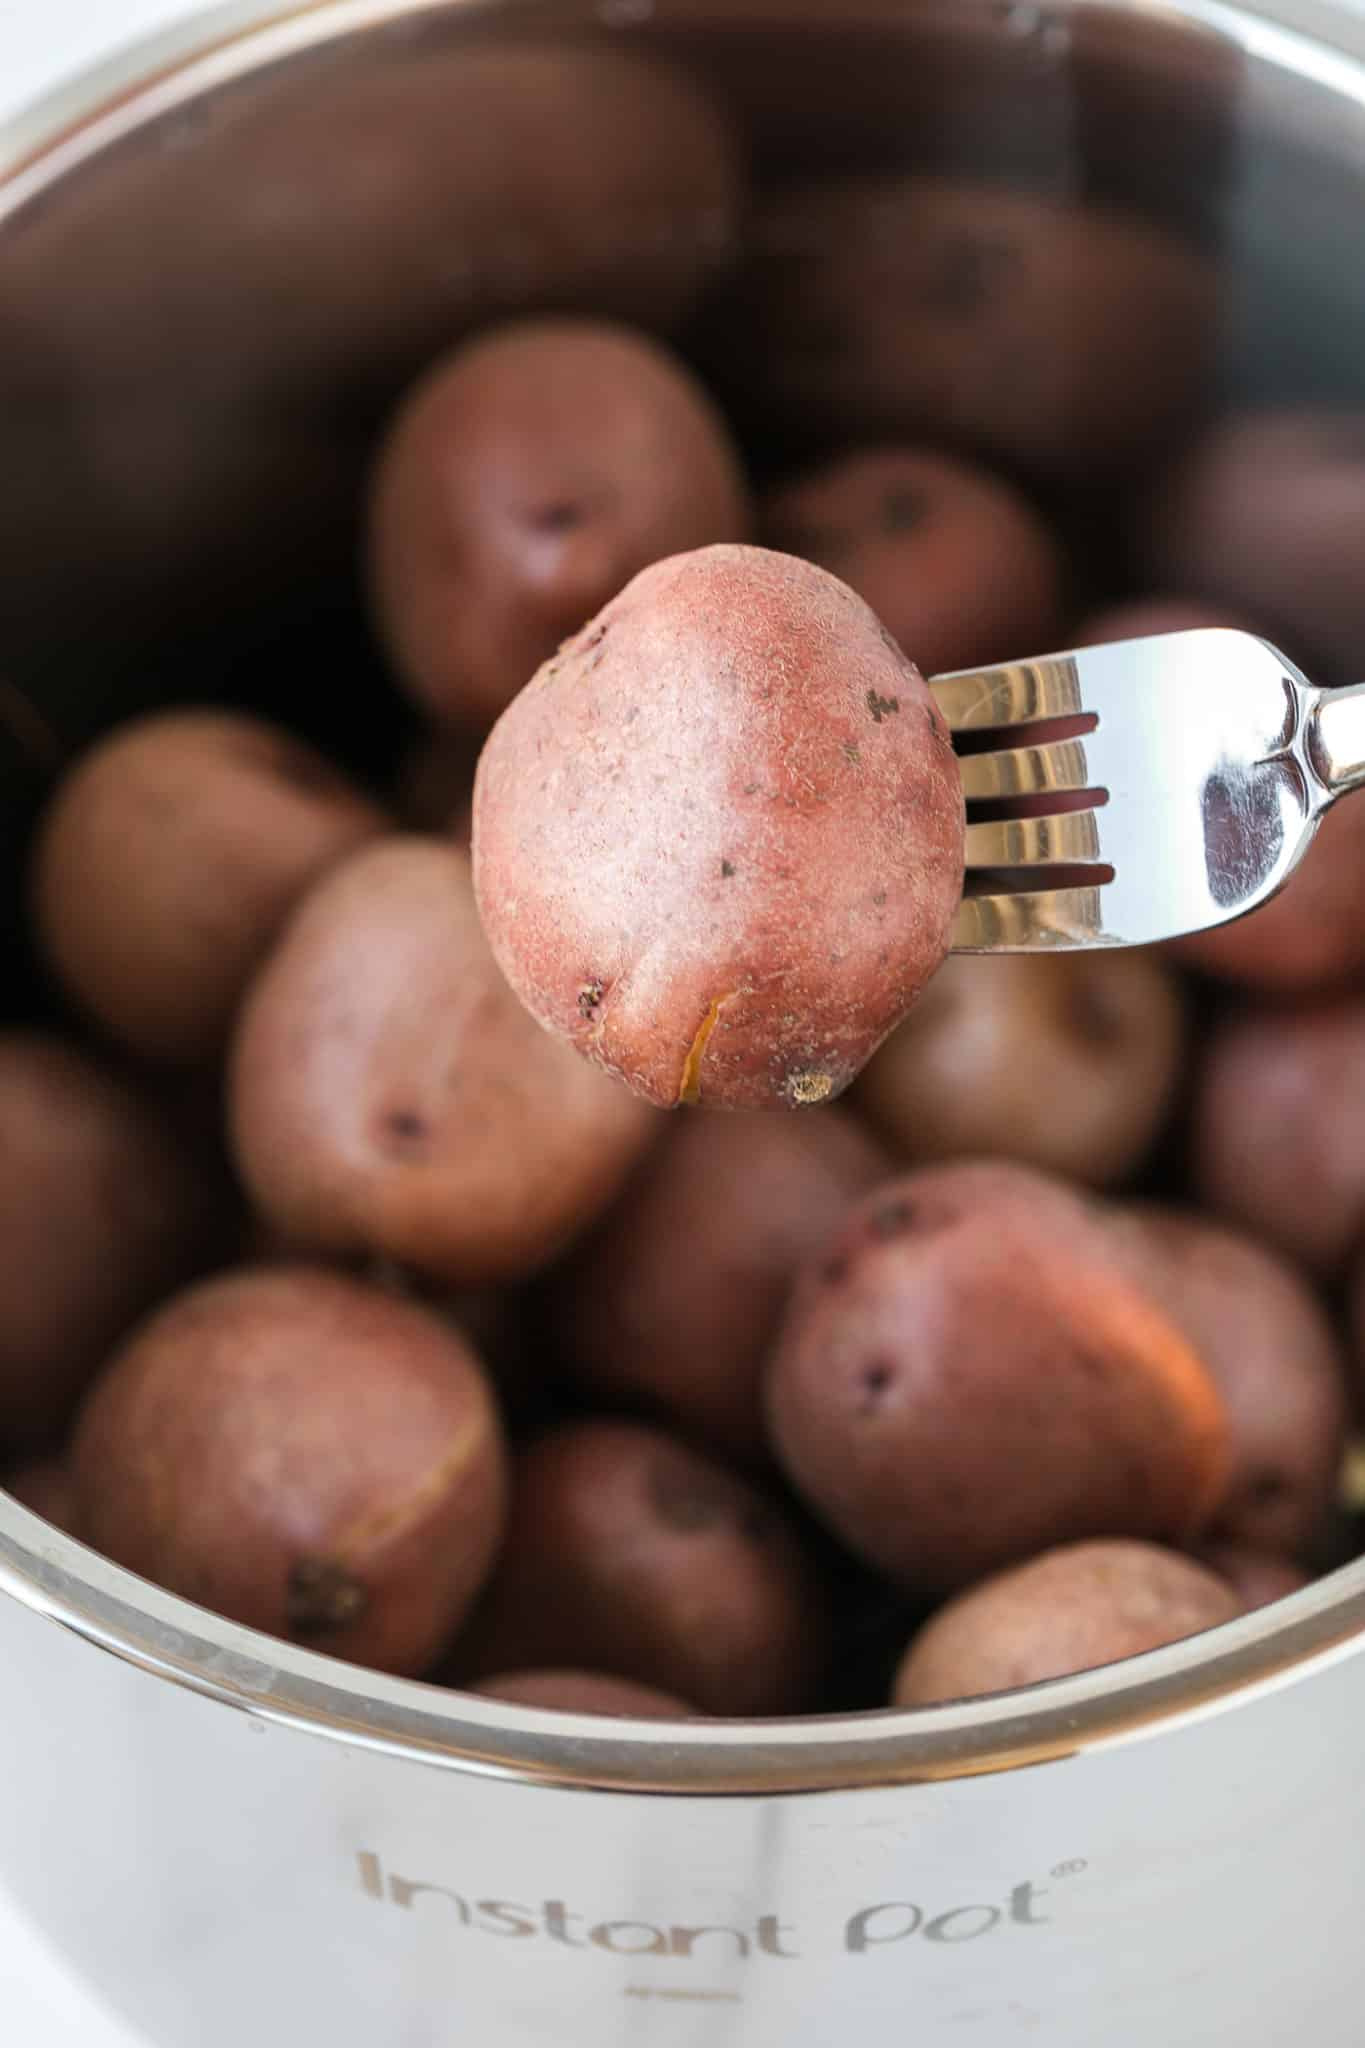 fork pricking a boiled potato in an instant pot pressure cooker